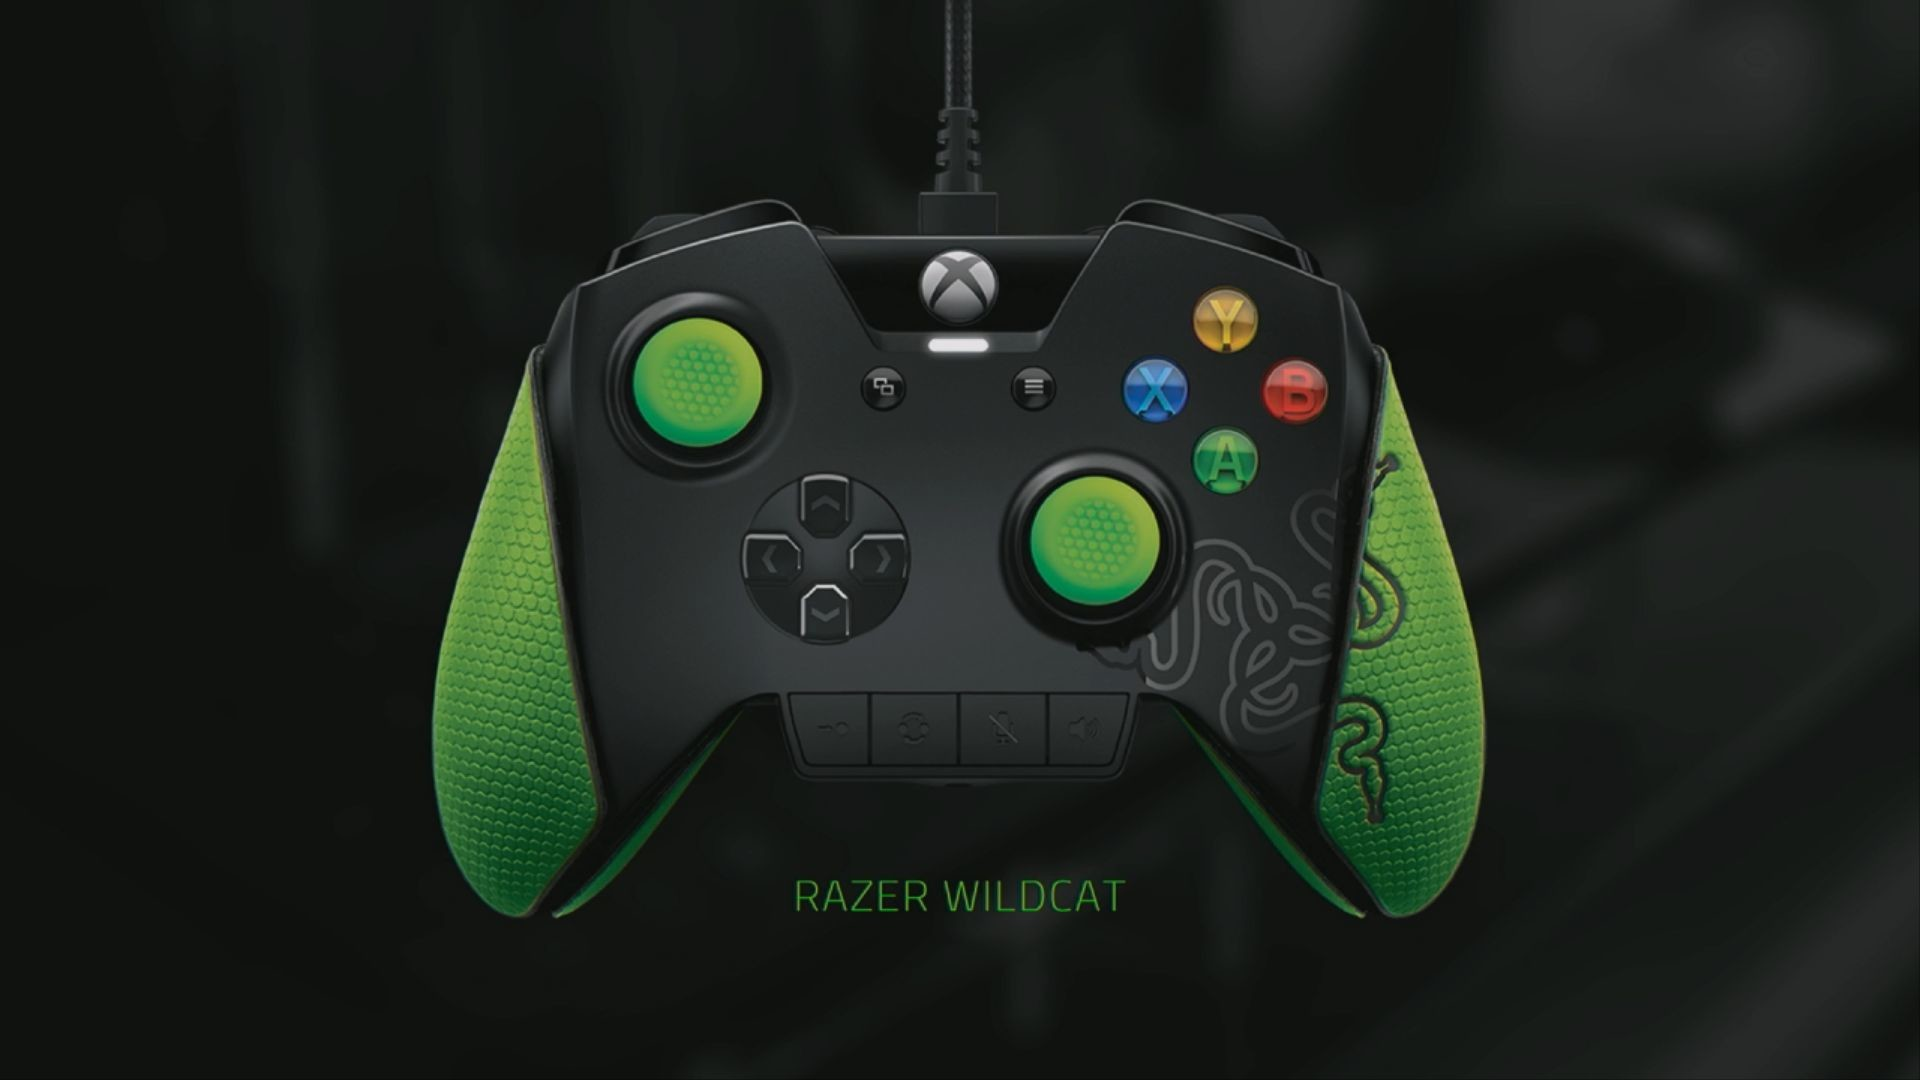 1920x1080 Razer Wildcat Xbox One Controller Announced; Durable but Lighter than  Microsoft's Controller: $149.99